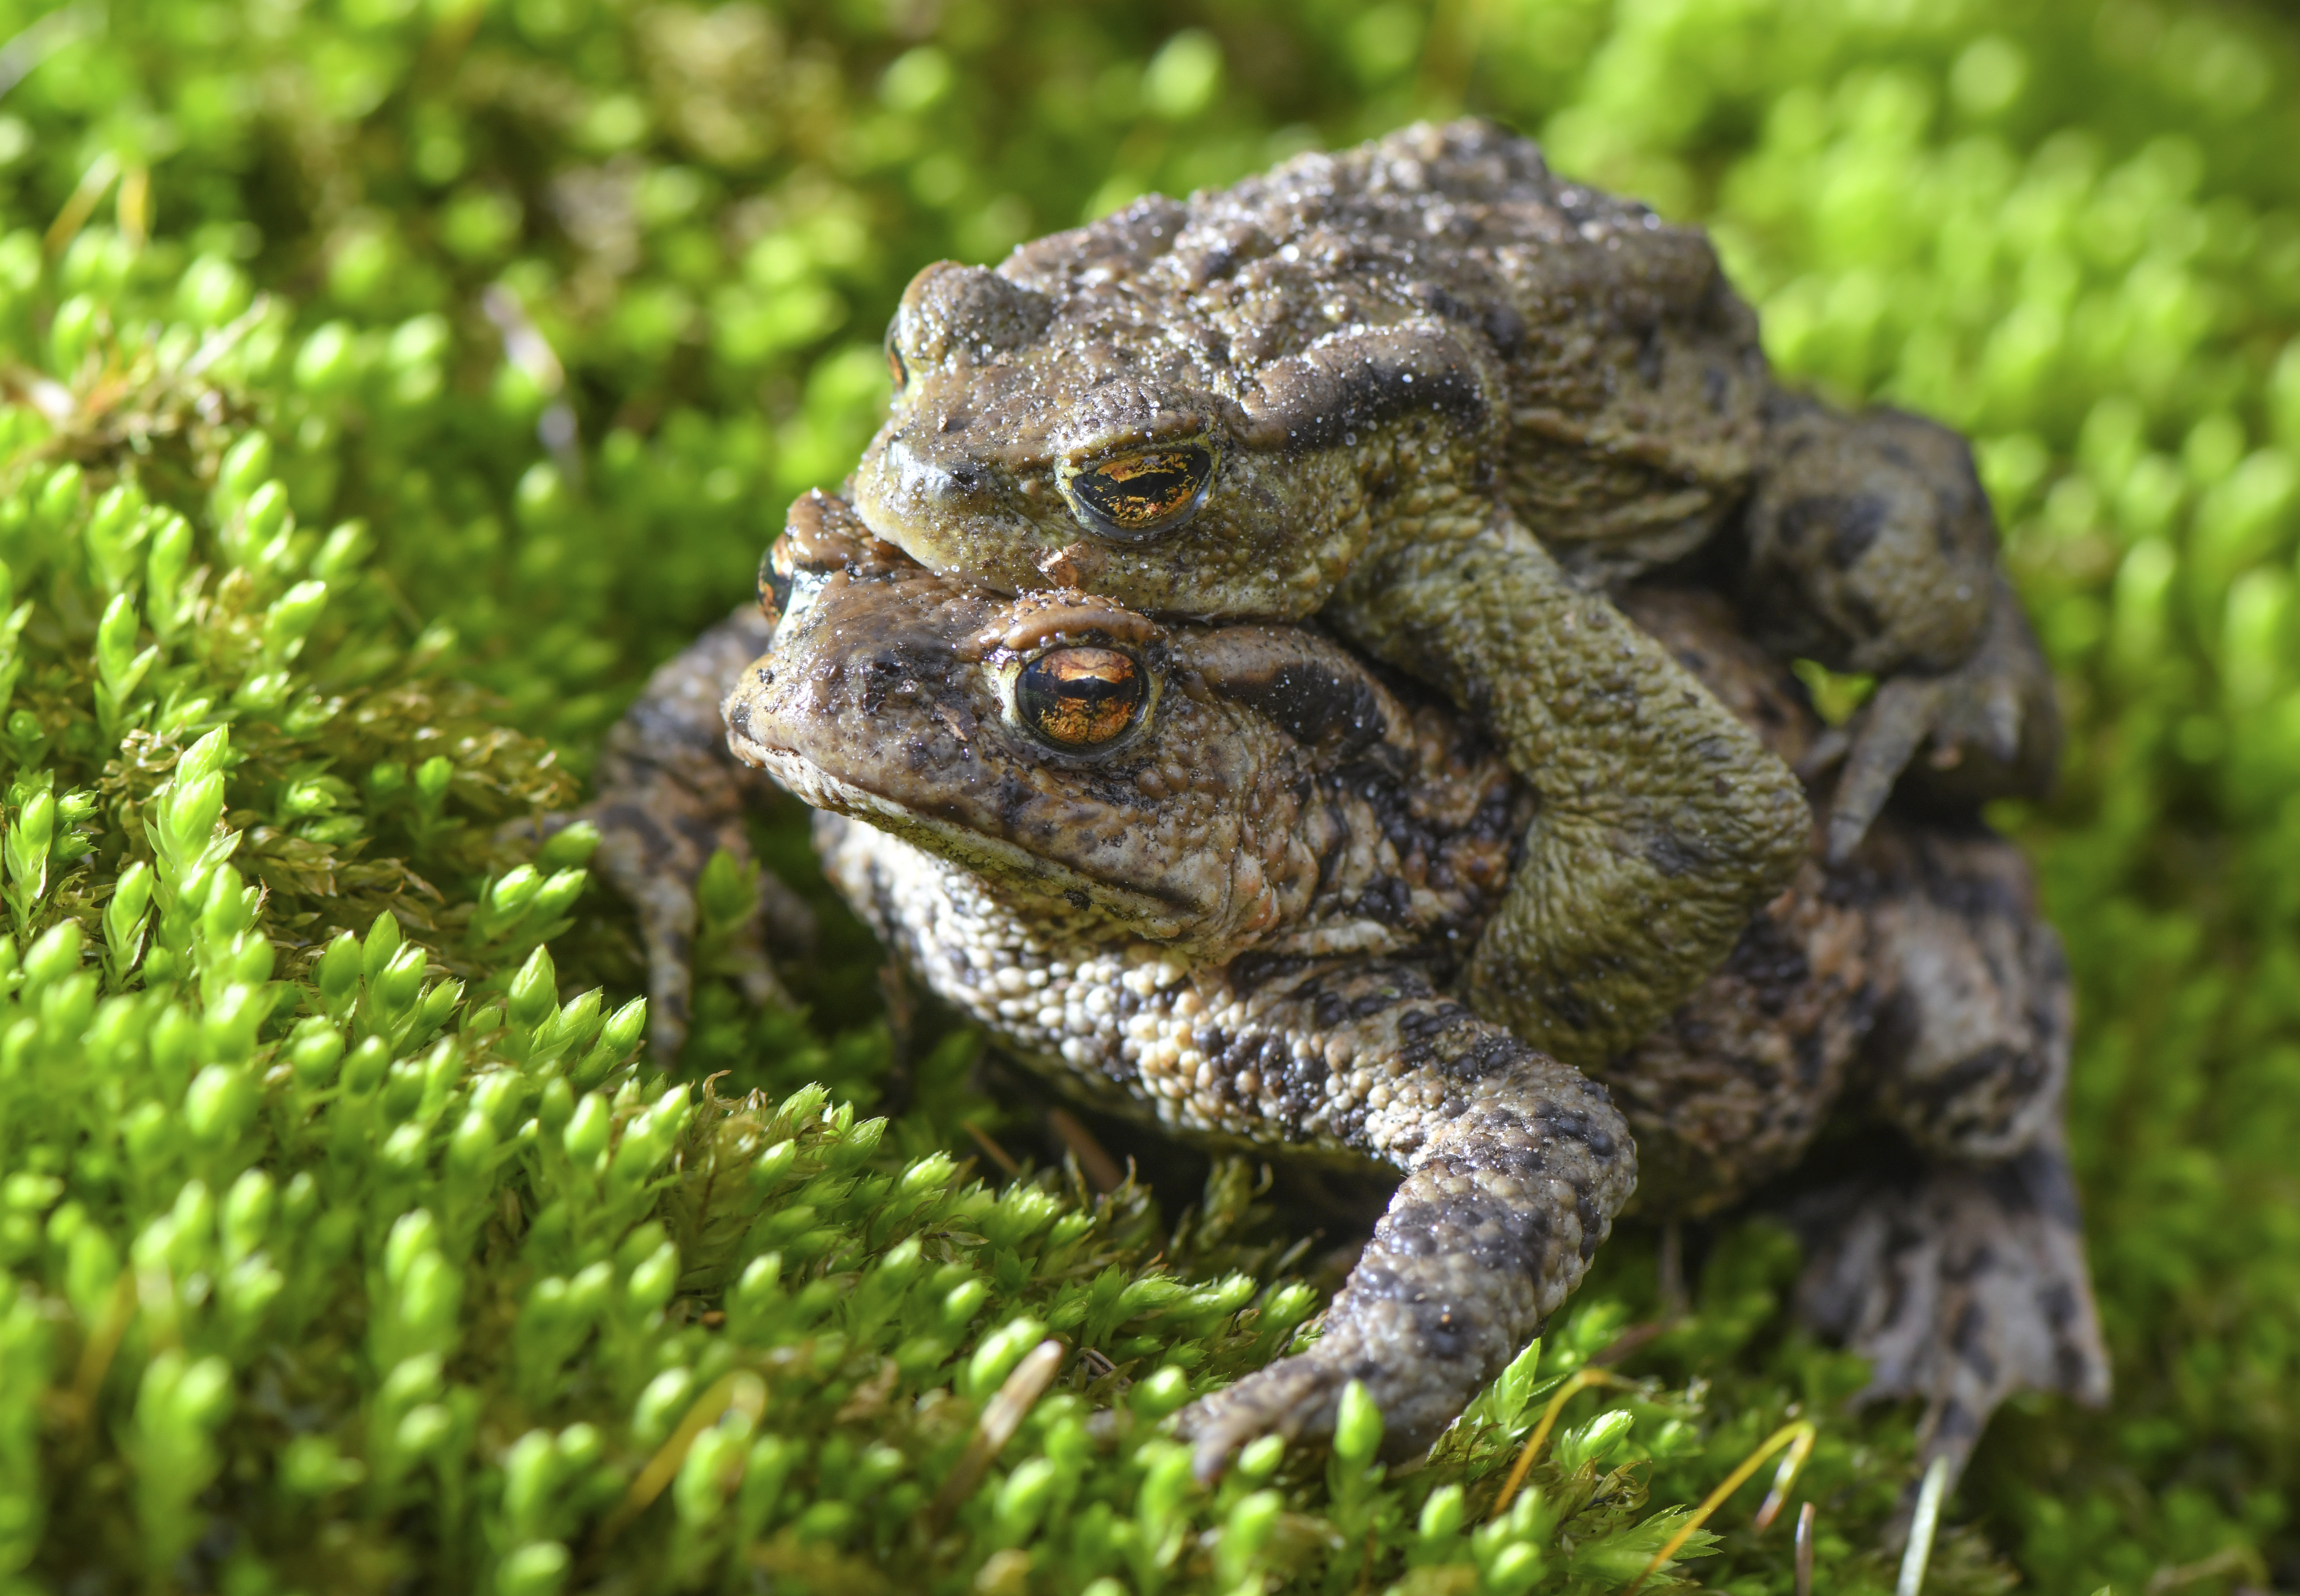 A pair of bufo toads crawl over moss on the edge of a small pond in Brandenburg, Germany on March 22, 2019.